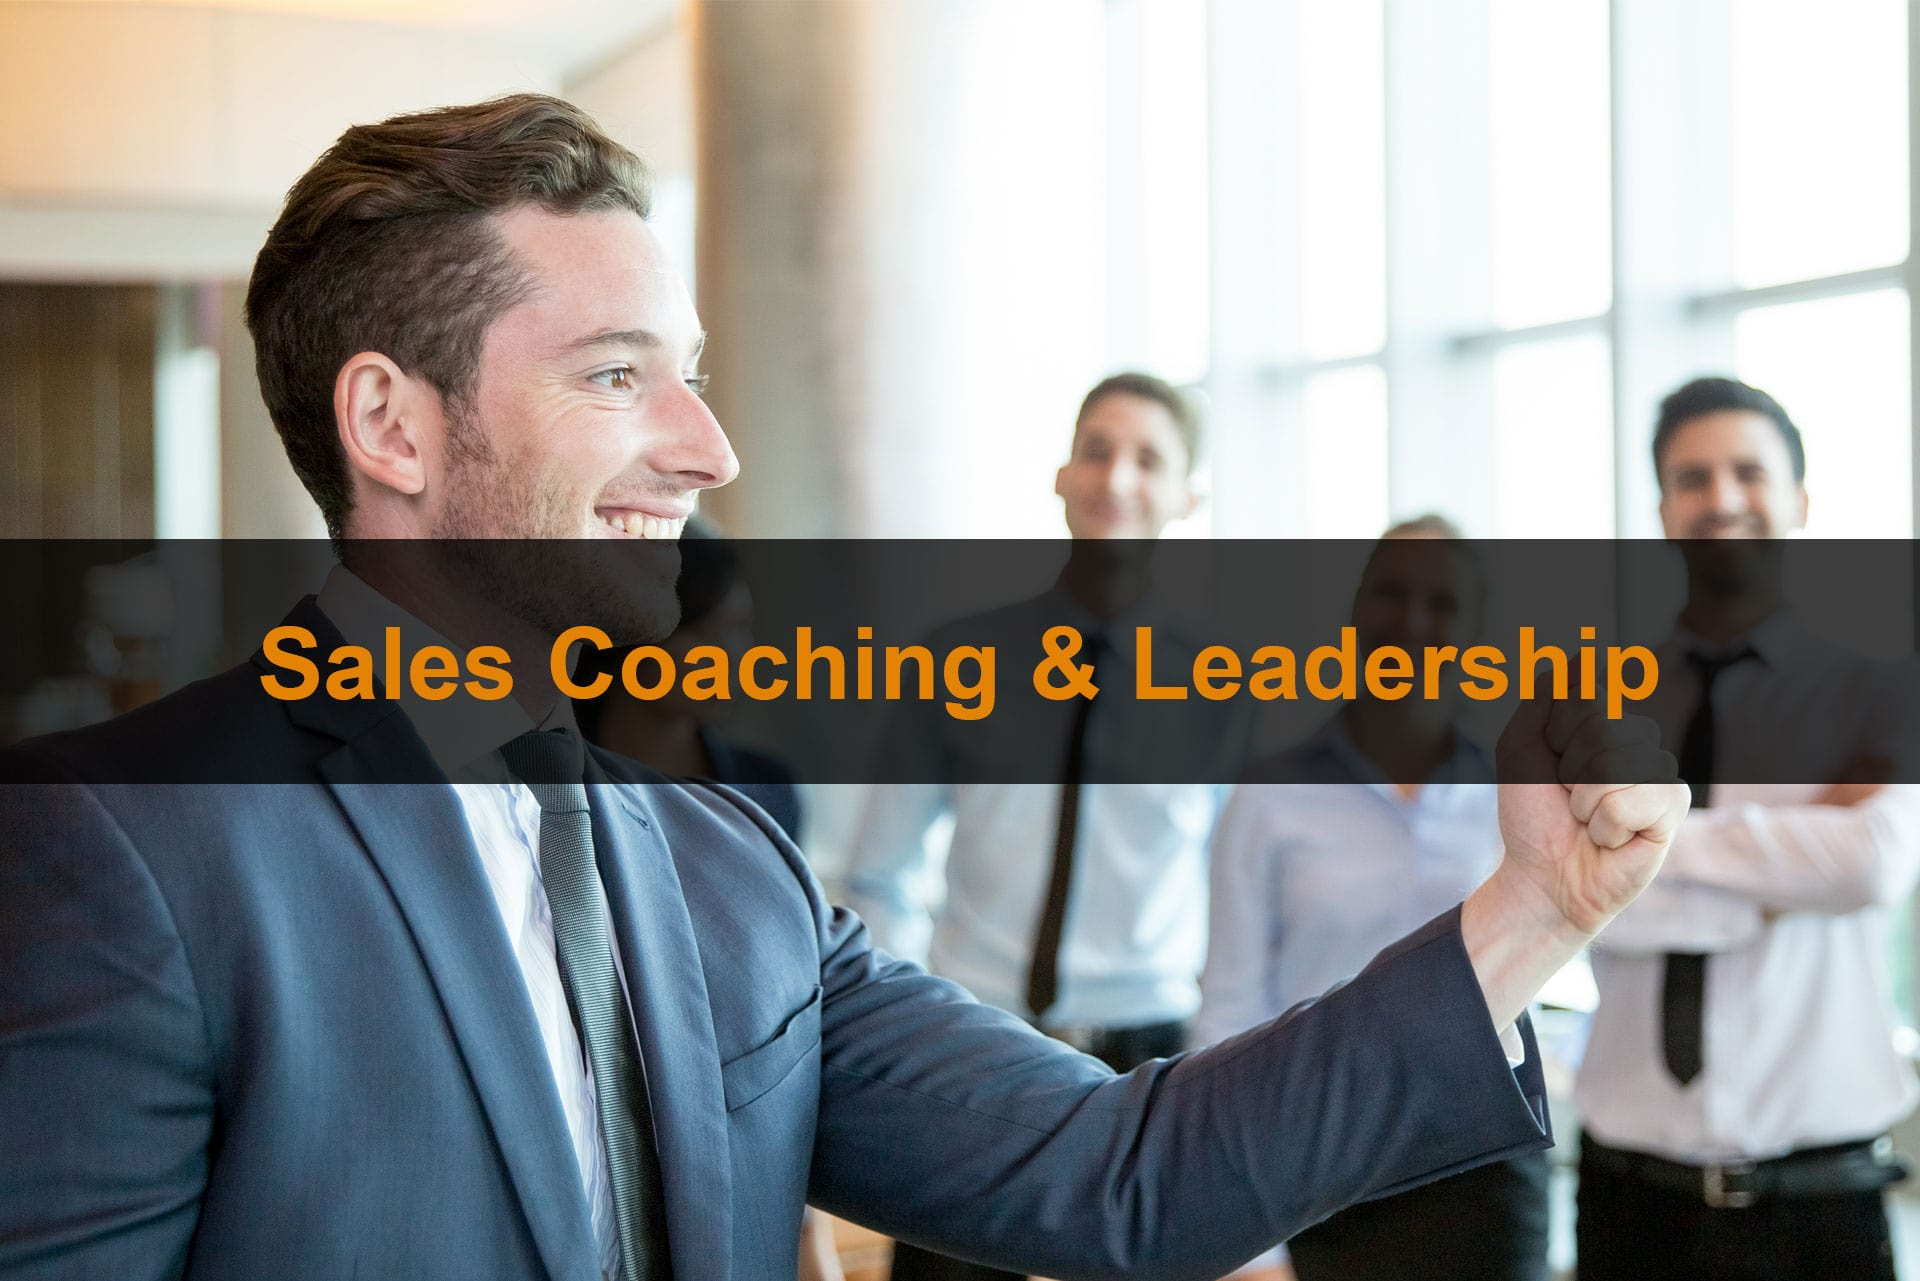 Sales-Coaching-&-Leadership-Artwork-2019-jpg-min